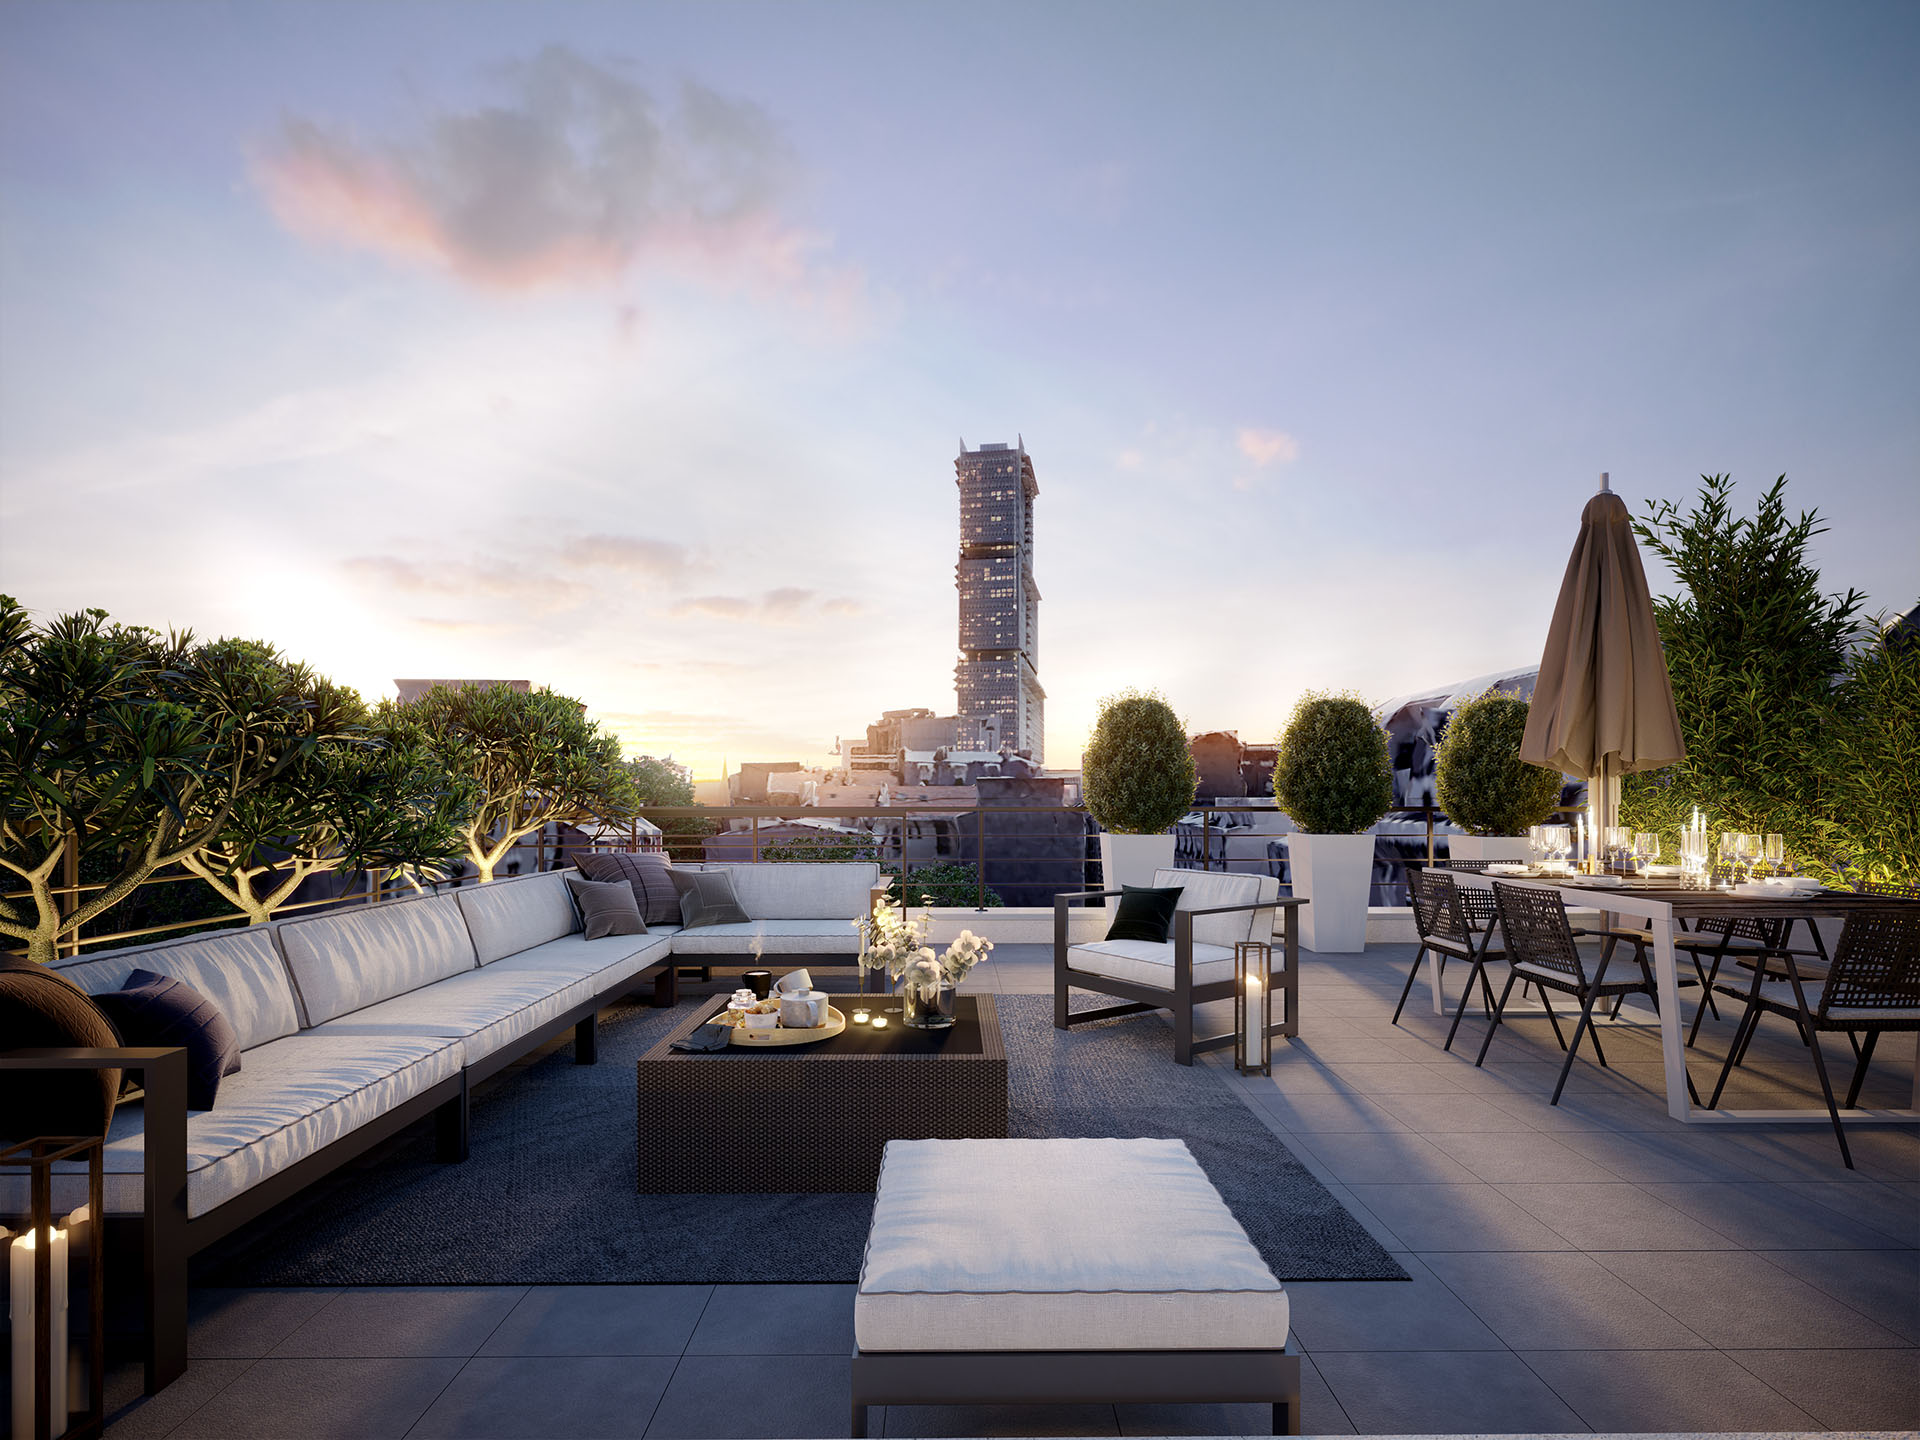 3D image of a rooftop terrace in Clichy